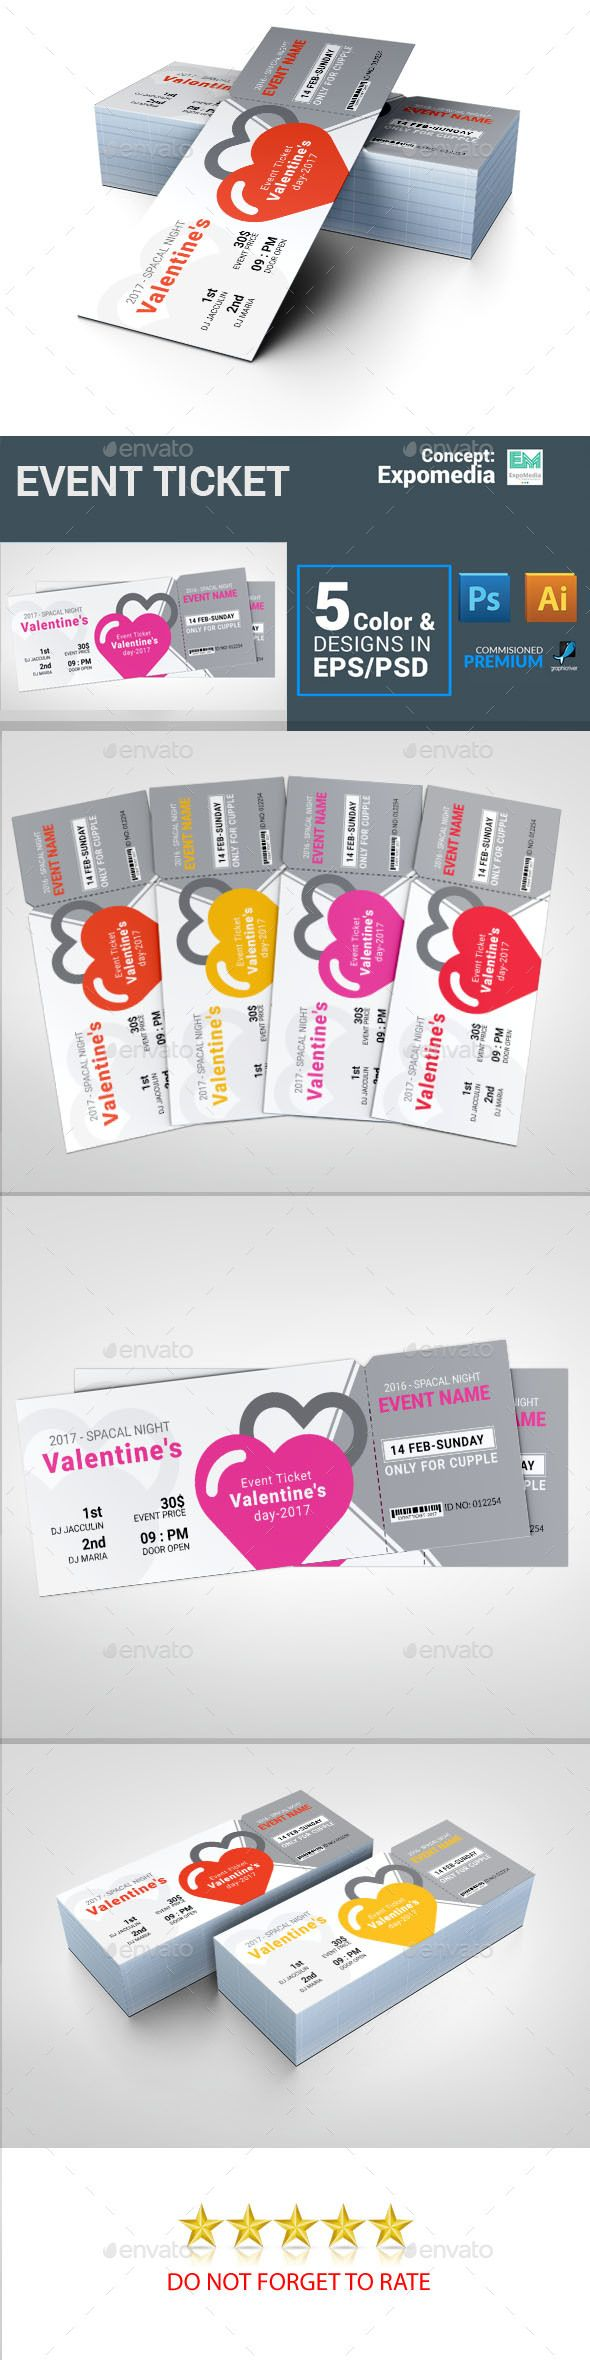 120 best Ticket Template images on Pinterest   Event tickets, Ticket ...